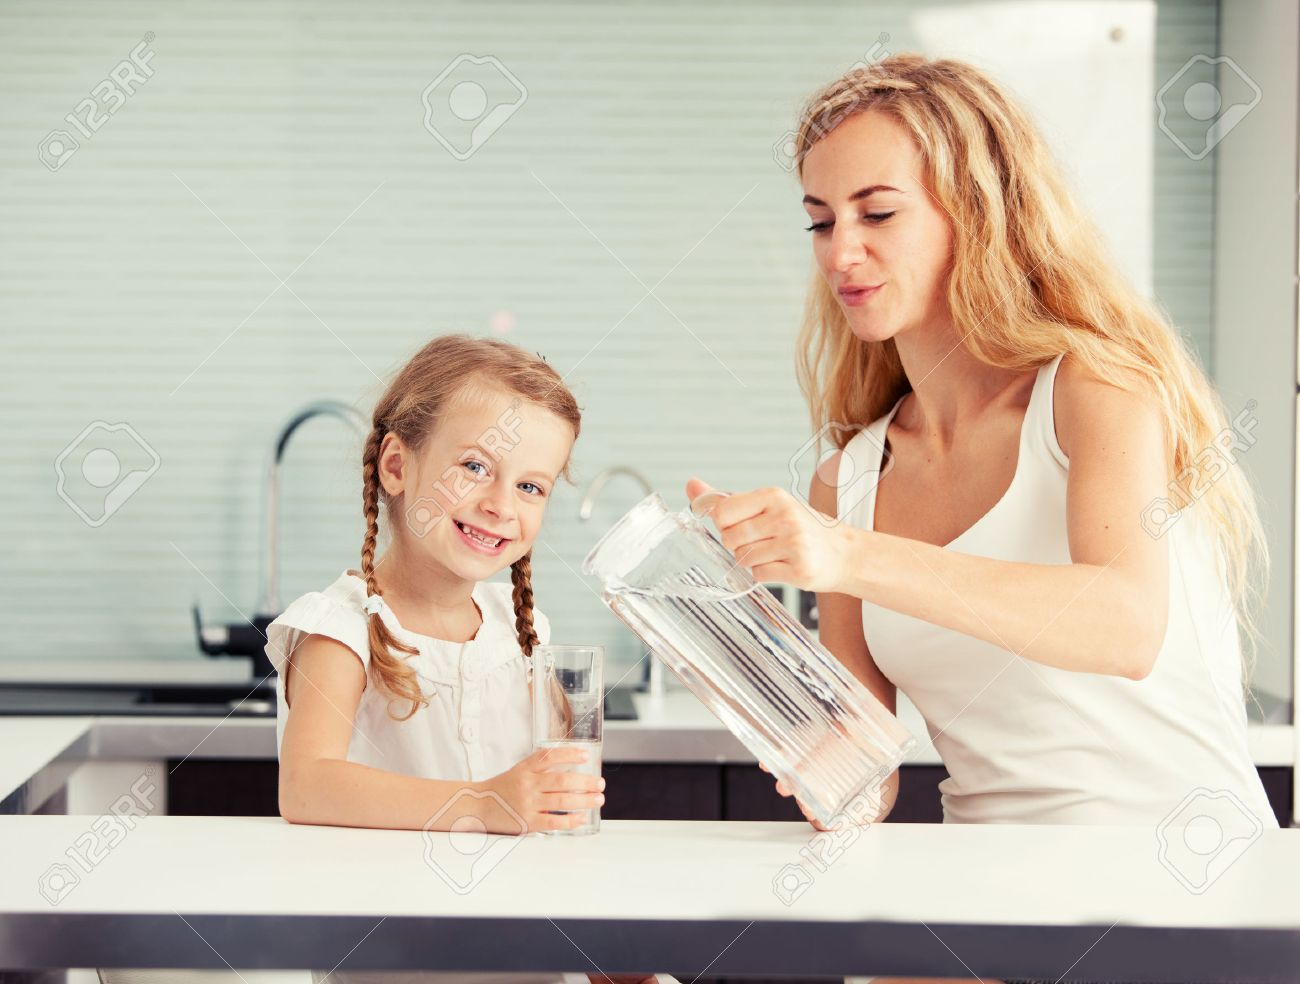 Child with mother drinking water from glass. Happy family at home in kitchen - 58898528